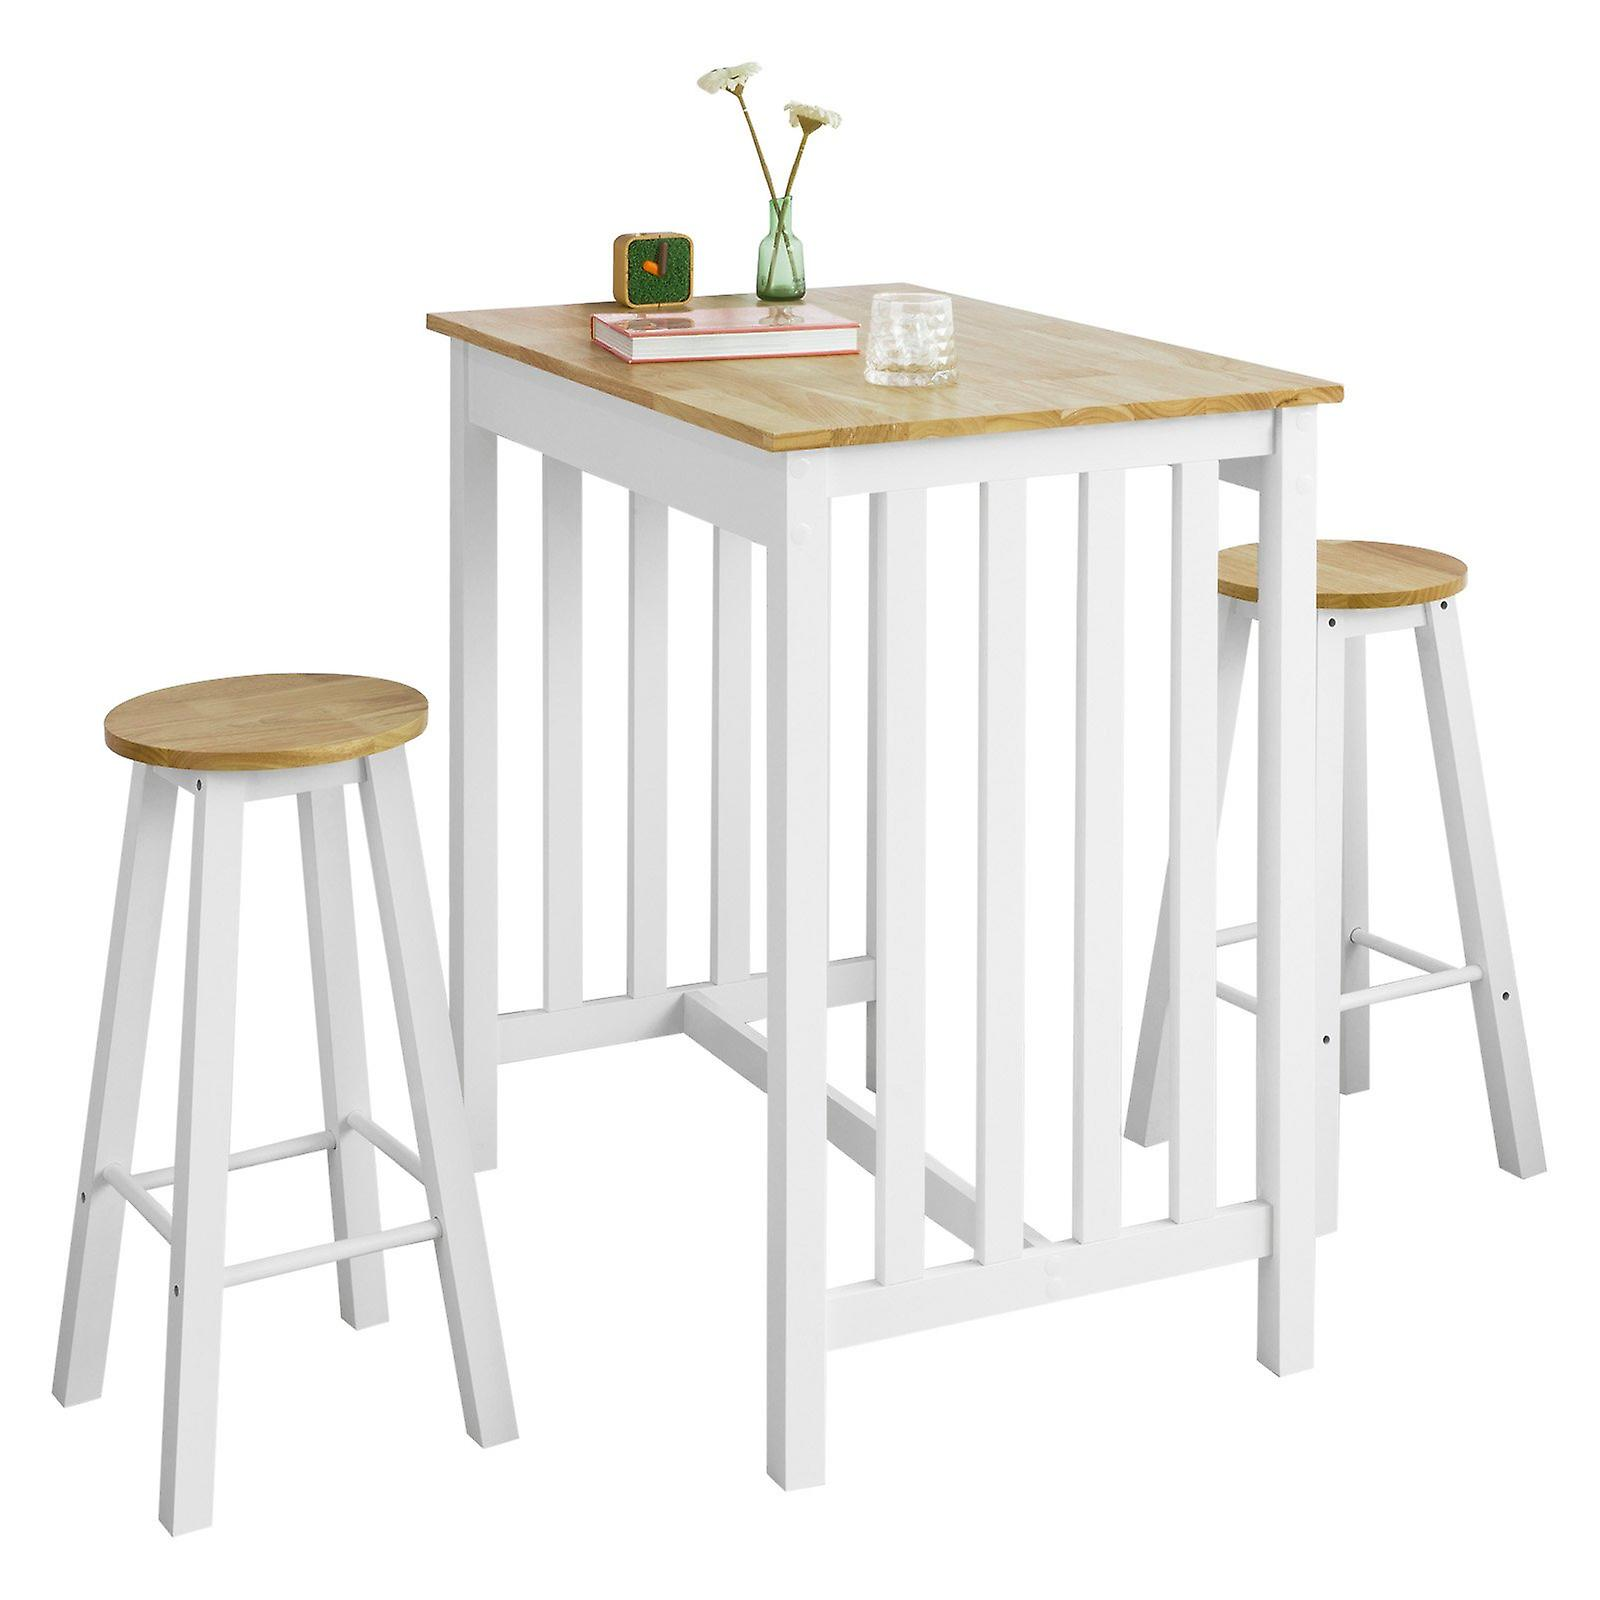 Sobuy Fwt65 Wn Bar Set Bar Table And 2 Stools 3 Pieces Home Kitchen Breakfast Bar Set Furniture Dining Set White Natura Fruugo Uk